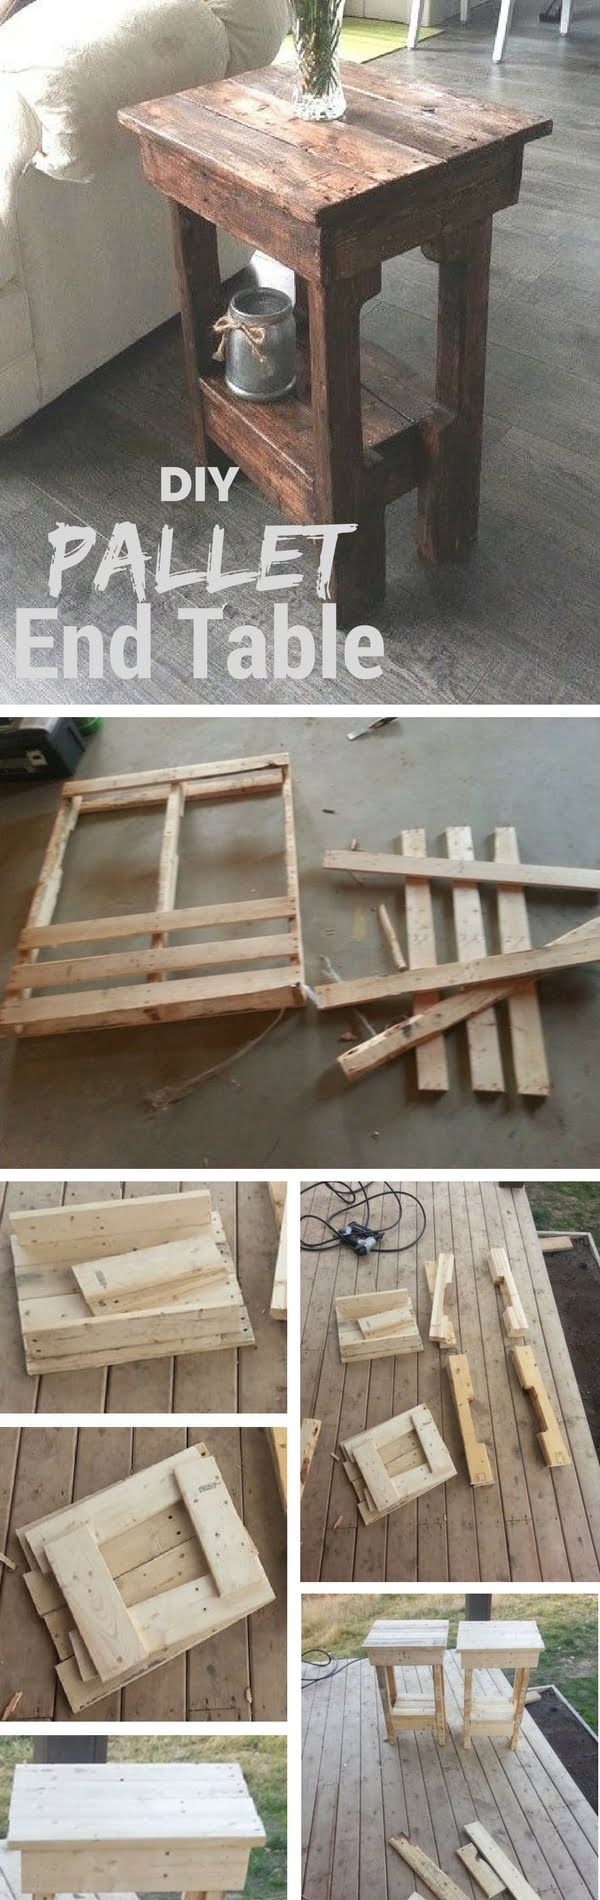 66 Diy Table Ideas On A Budget